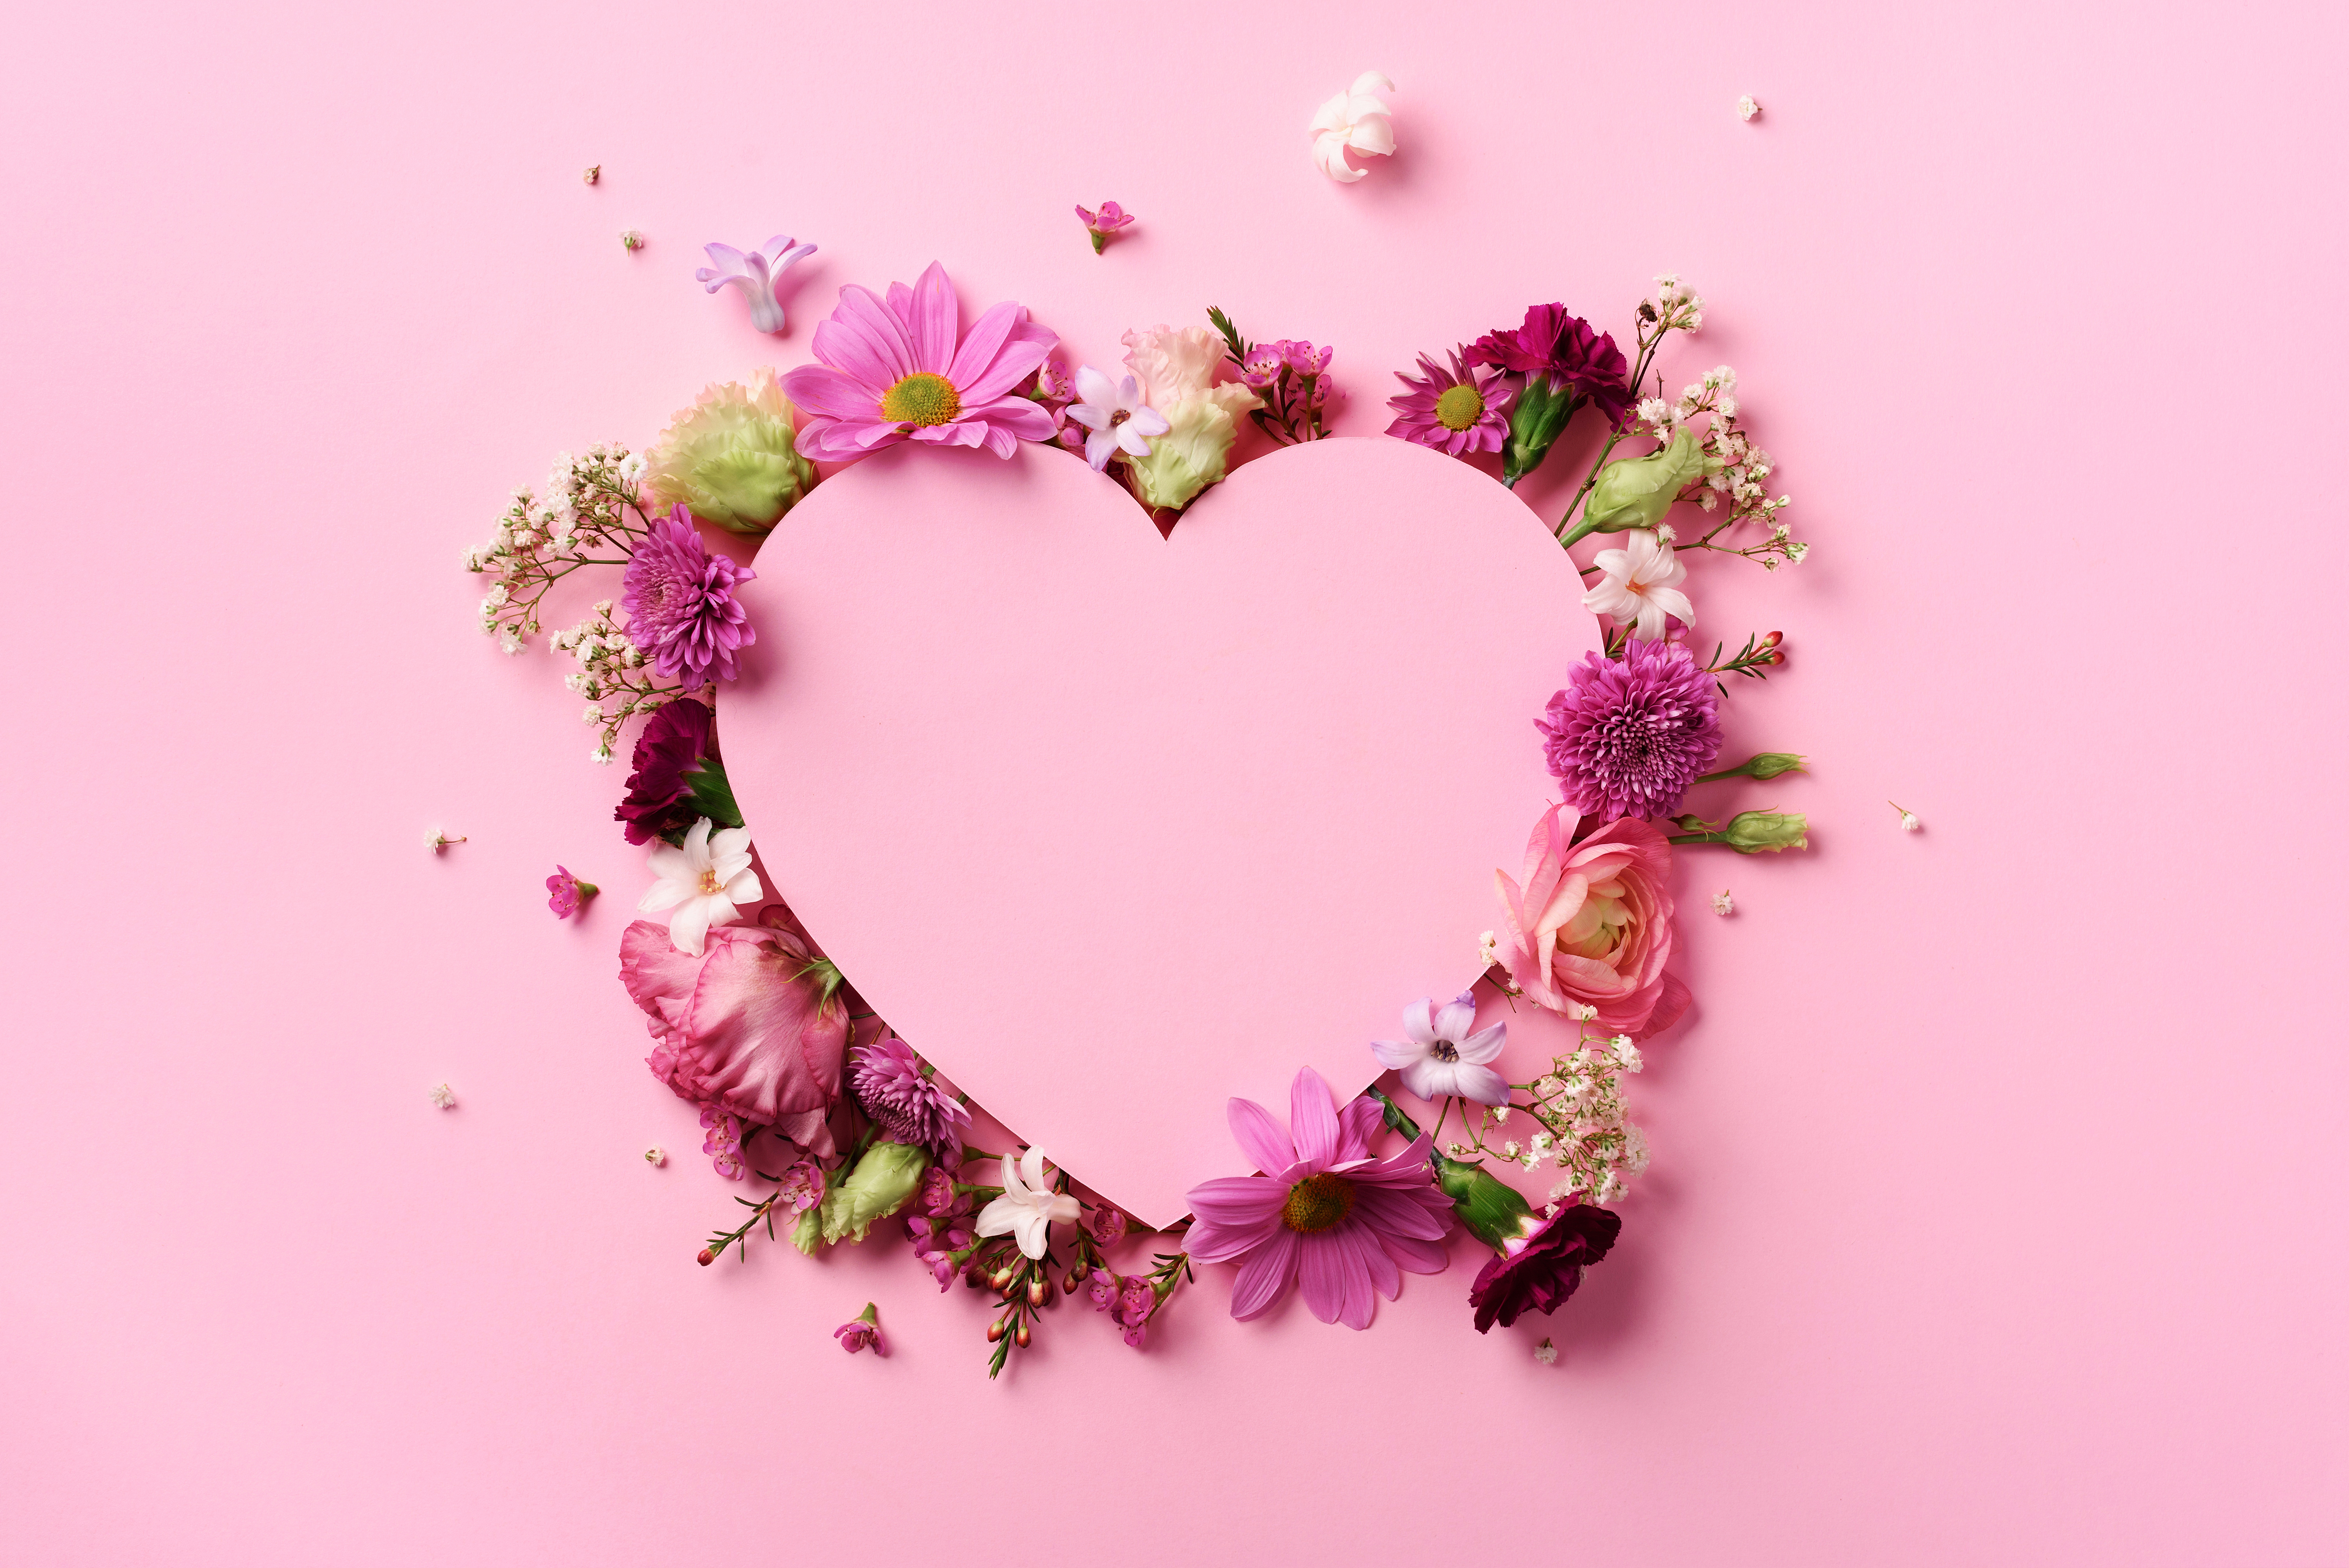 Pink Heart surrounded by flowers. Symbolizing embracing nature and spring rituals during valentine's day.